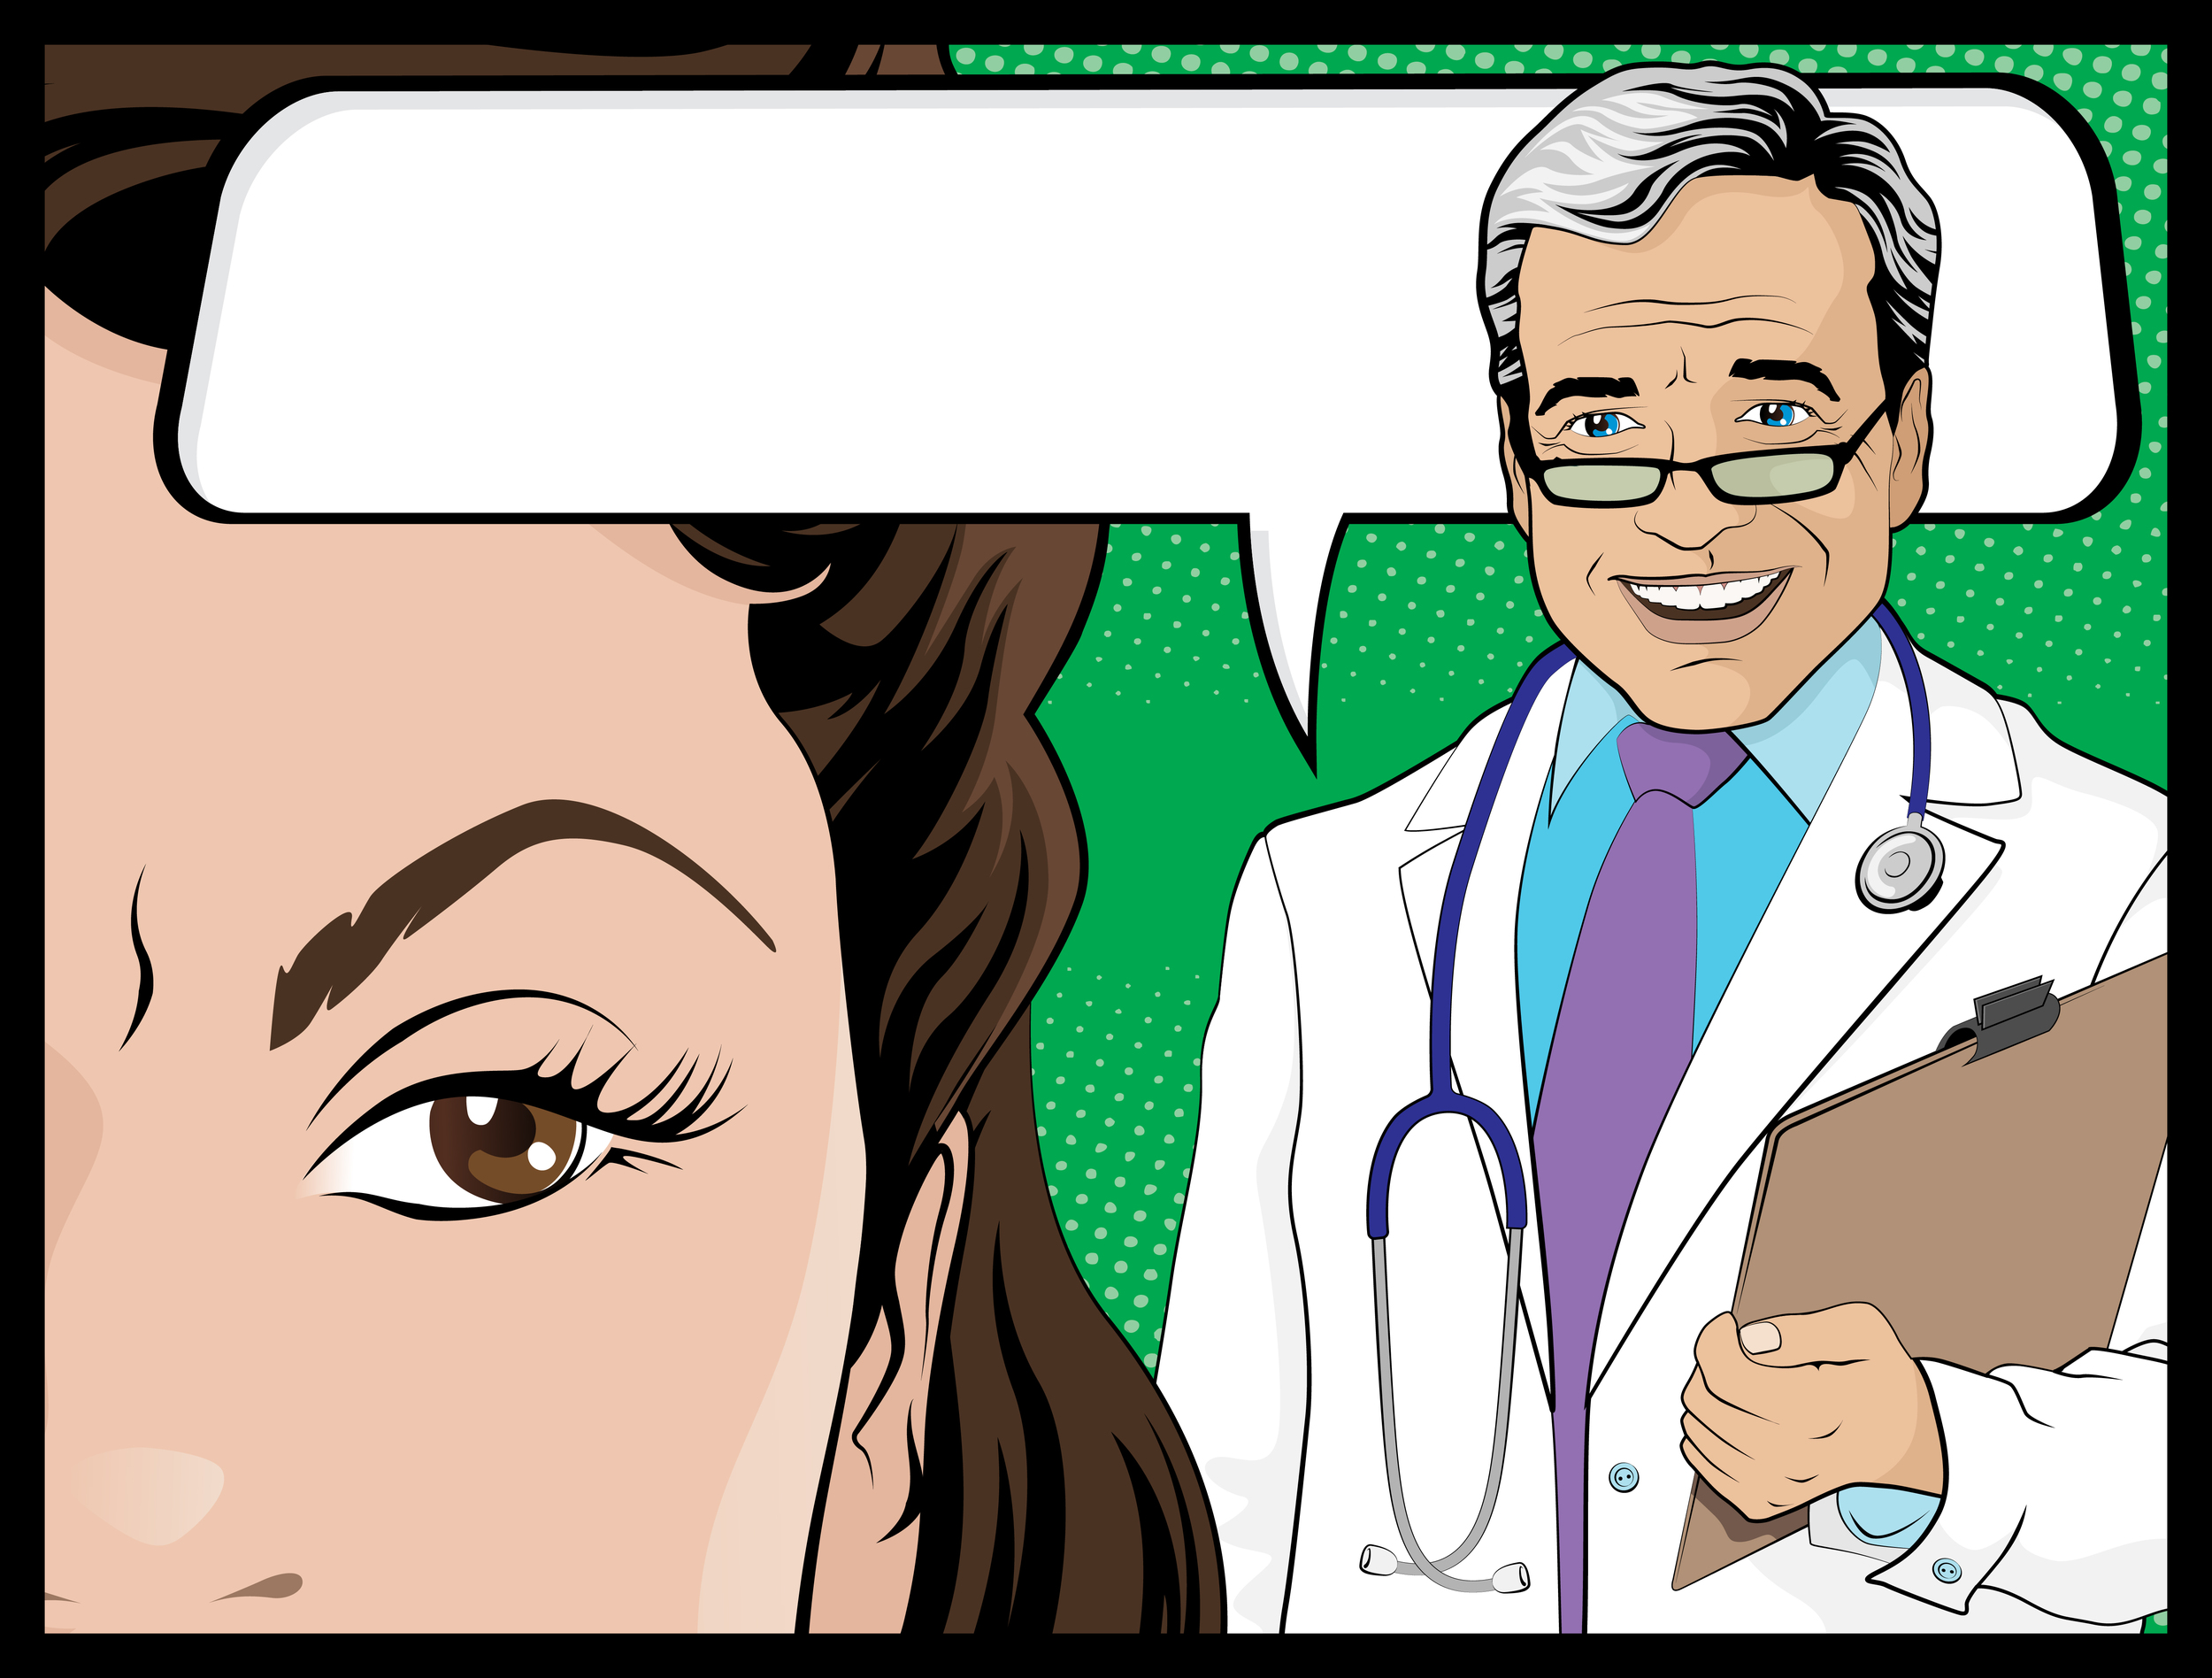 """Doctor's speech bubble should read: """"You look and act like a lady. I'm sure you just need to calm down."""""""